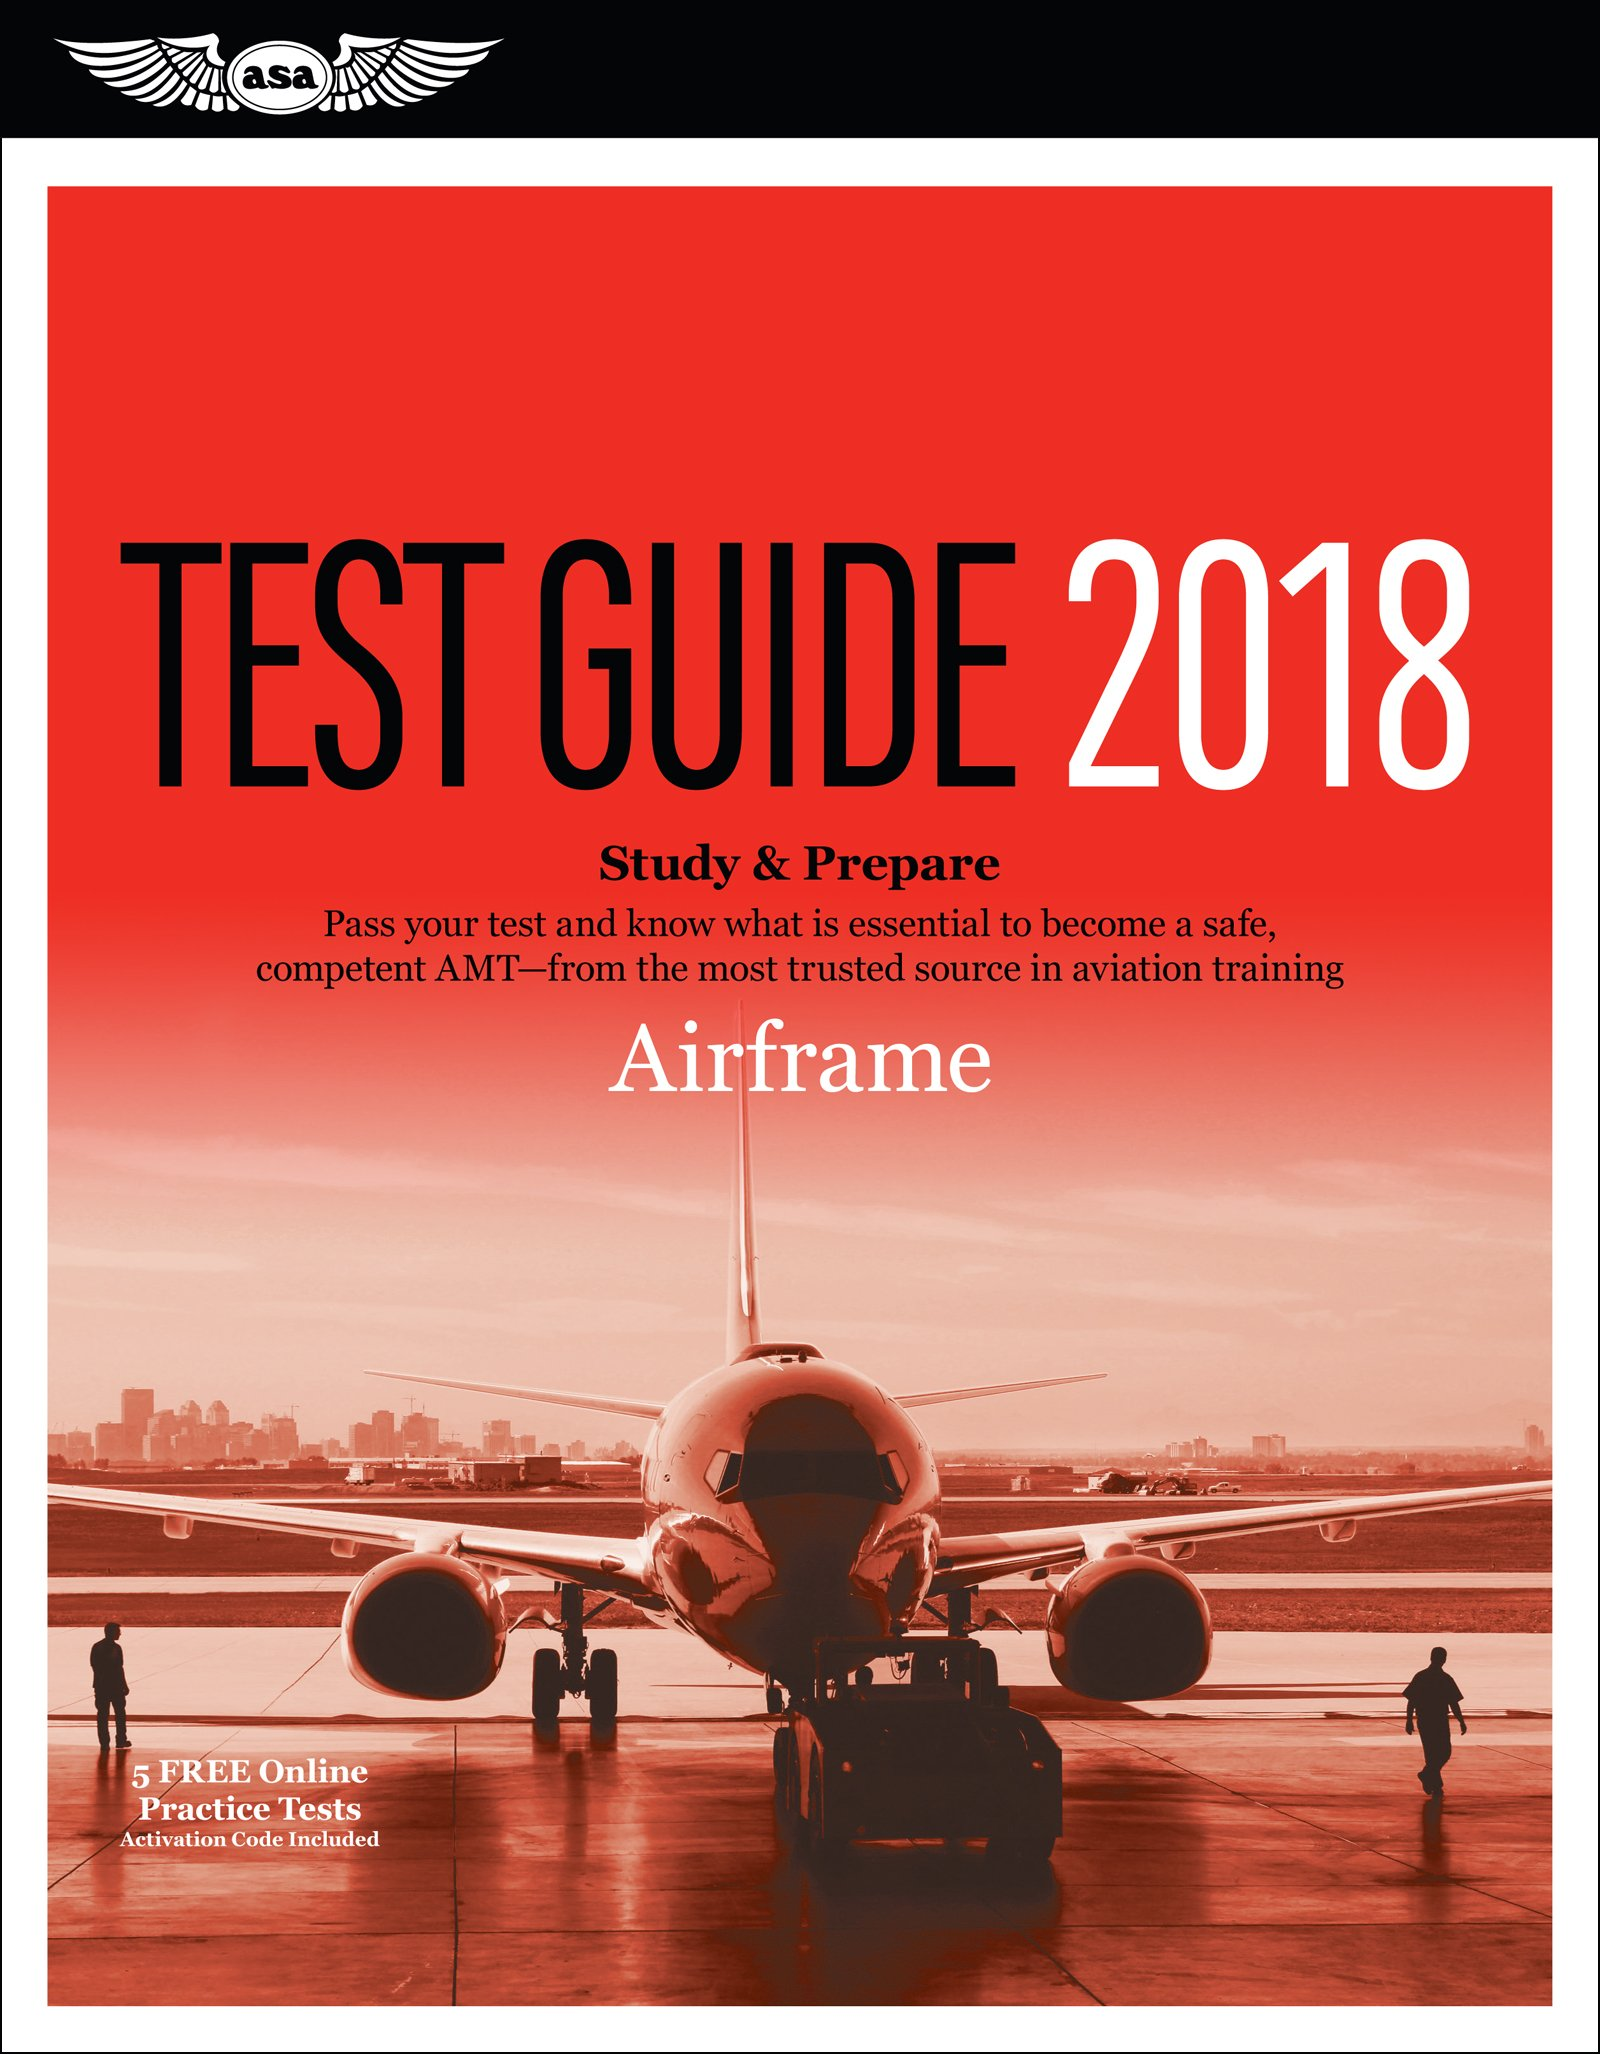 Airframe Test Guide 2018: Pass your test and know what is